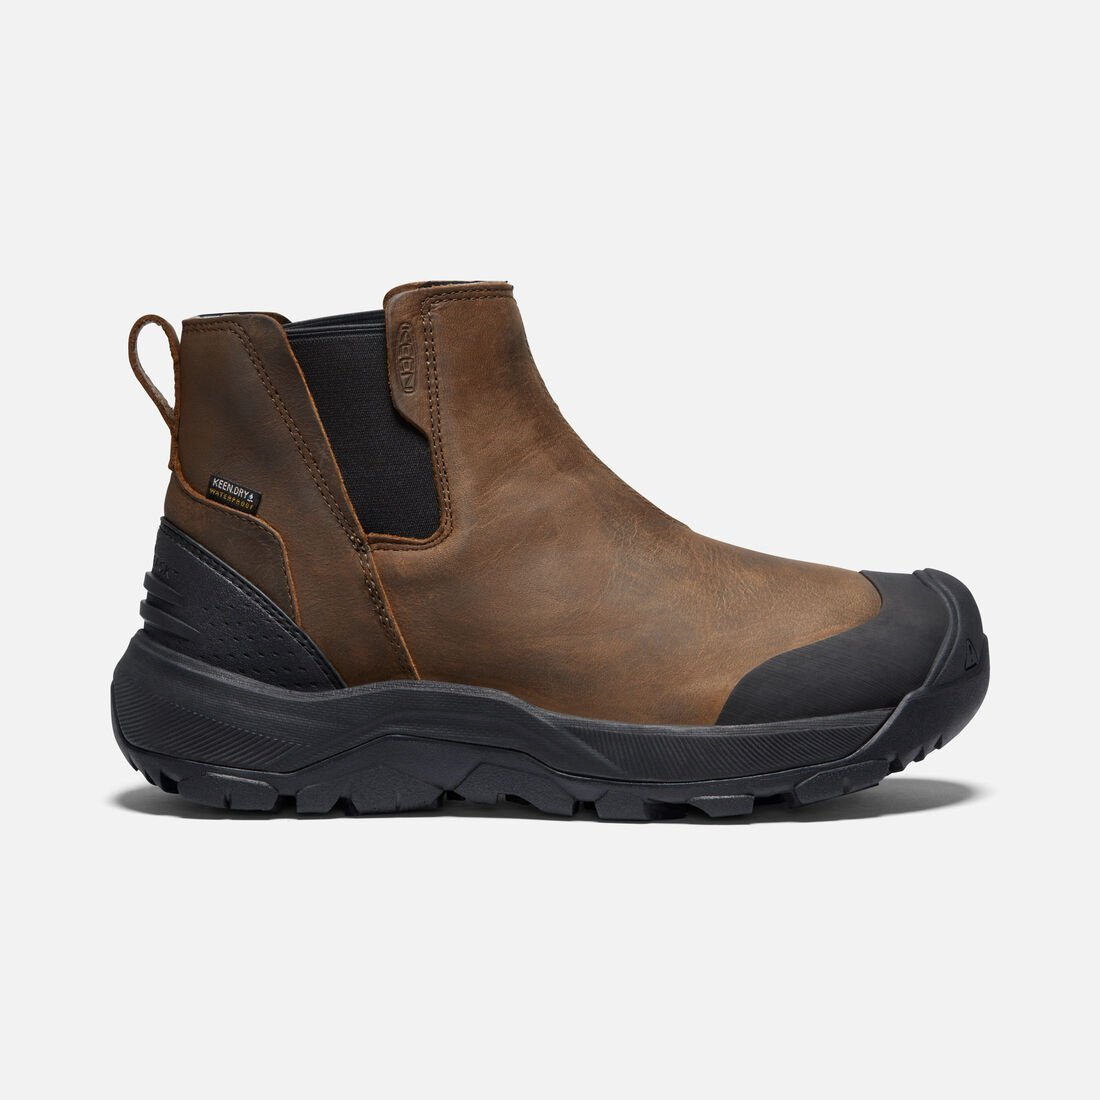 Men's Revel IV Chelsea in Canteen/Black - large view.